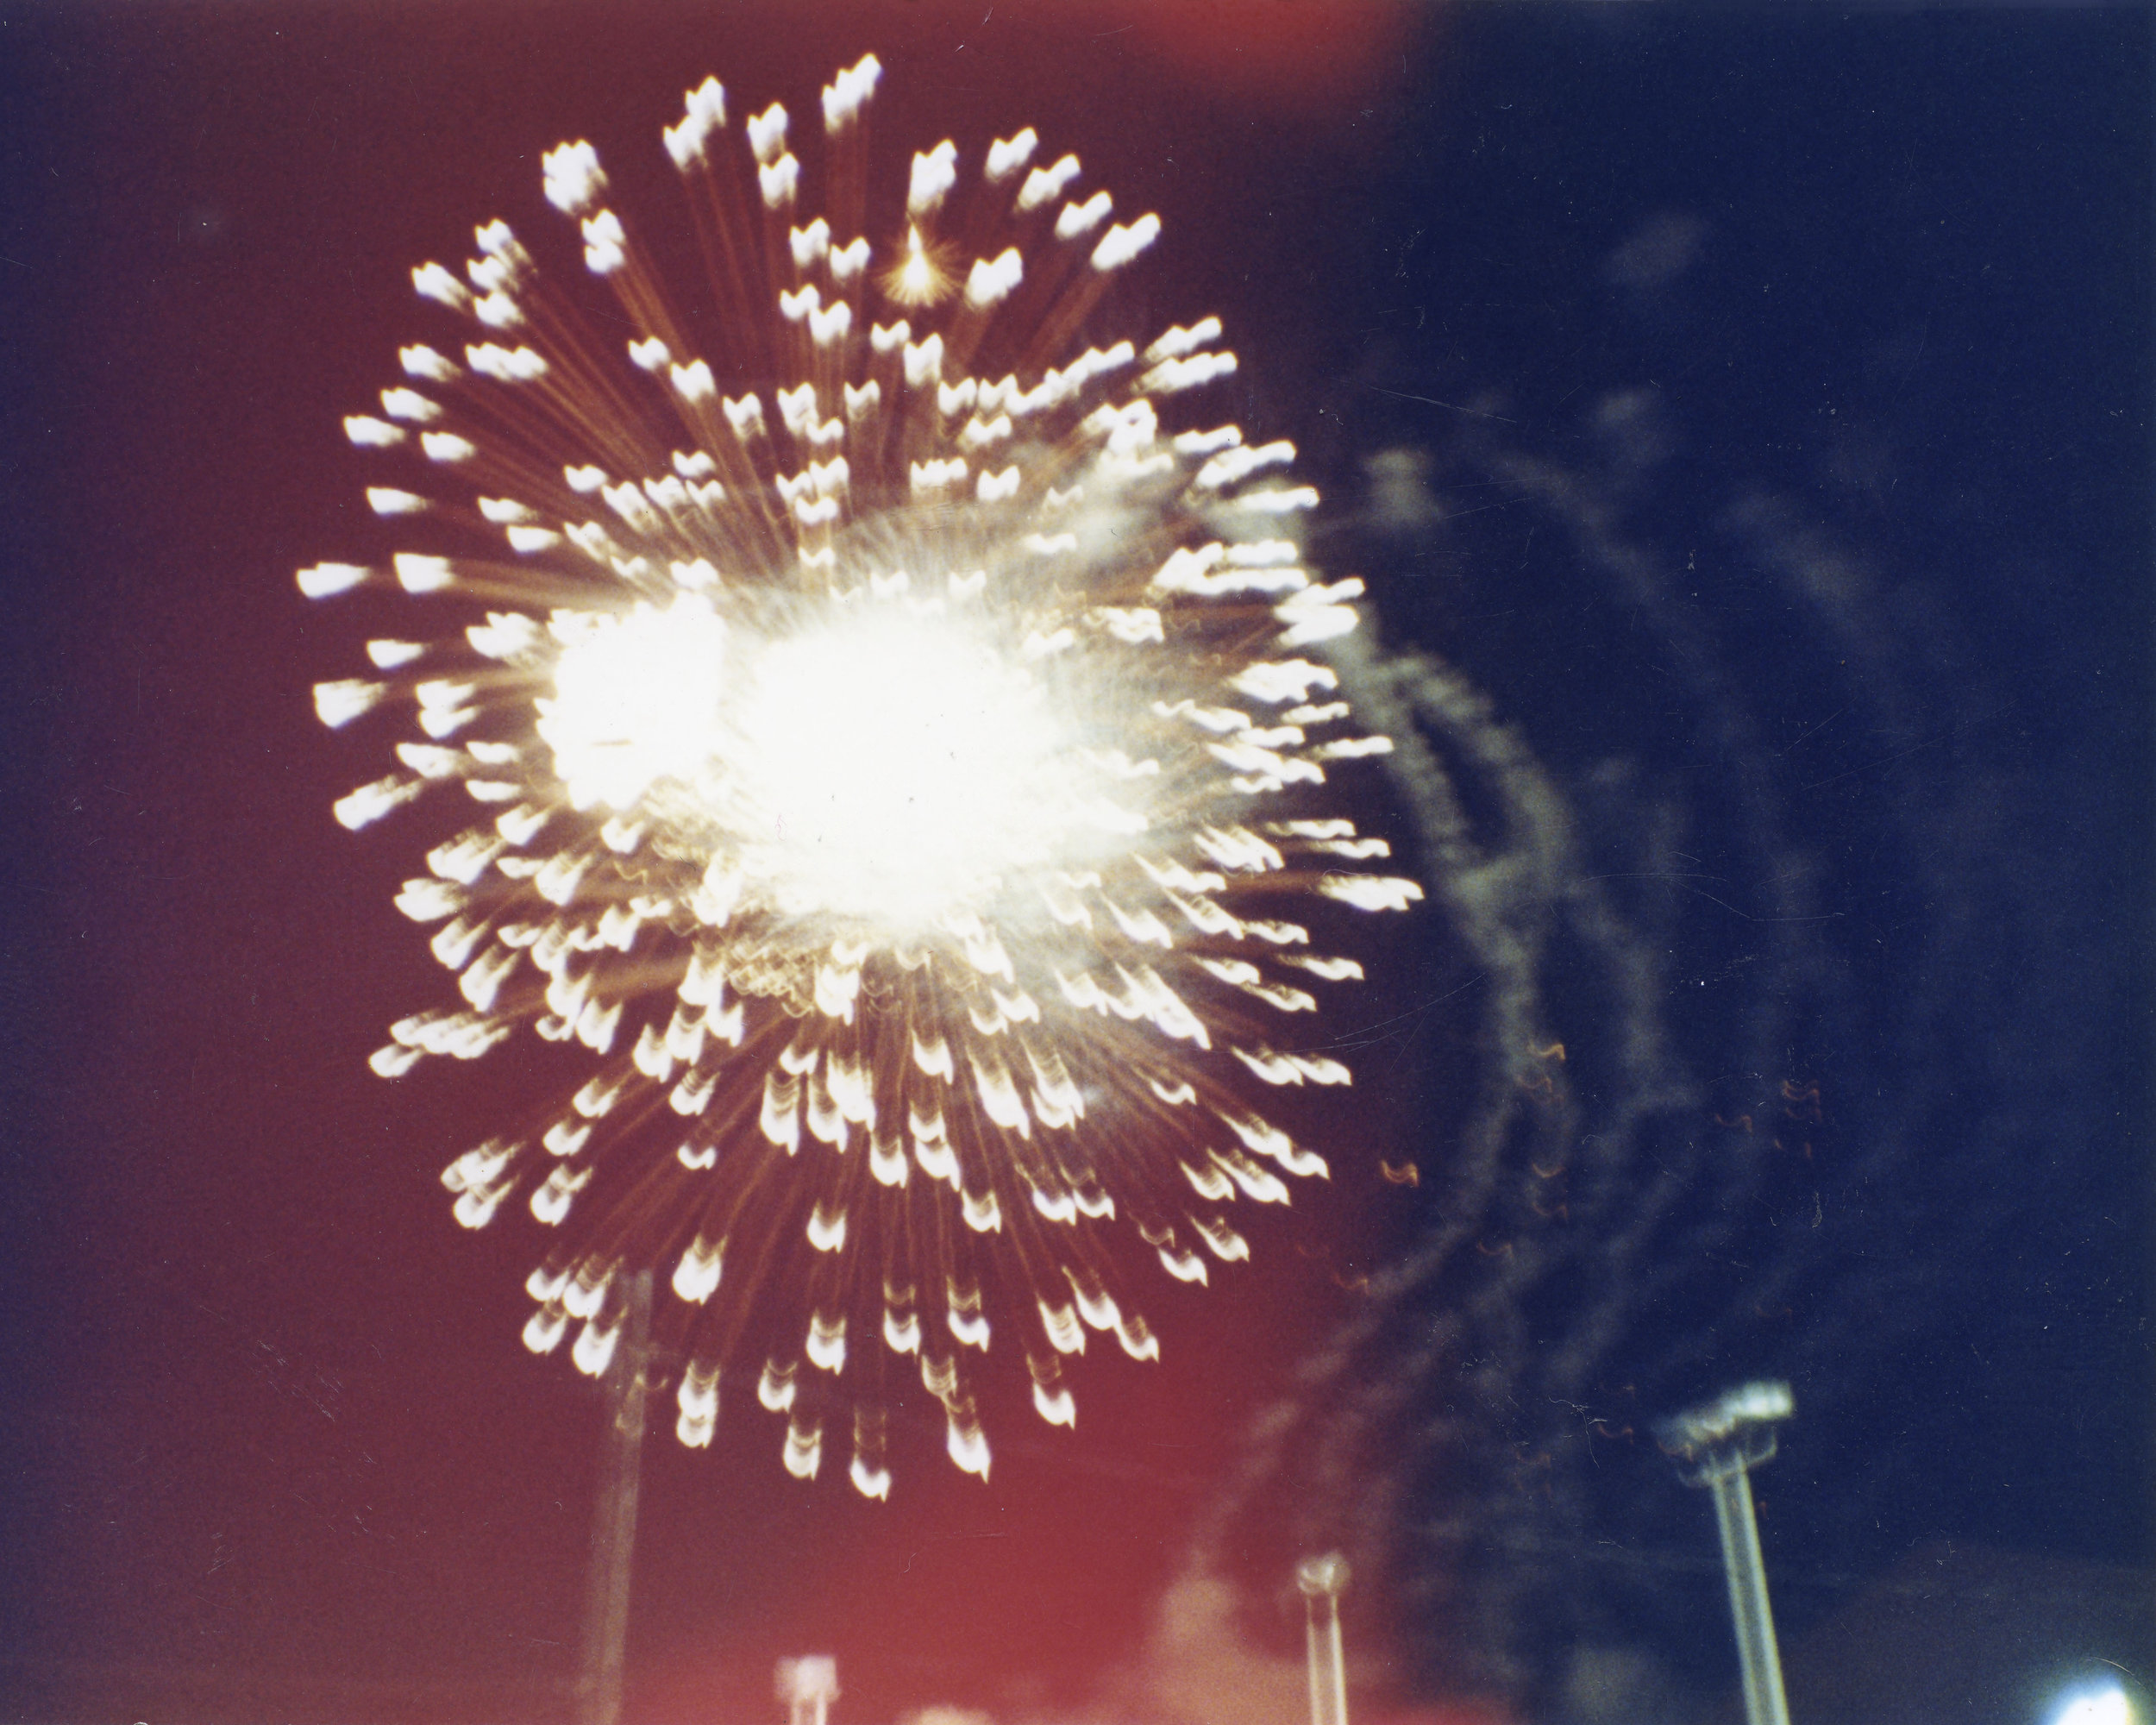 Lee_Fireworks copy.jpg